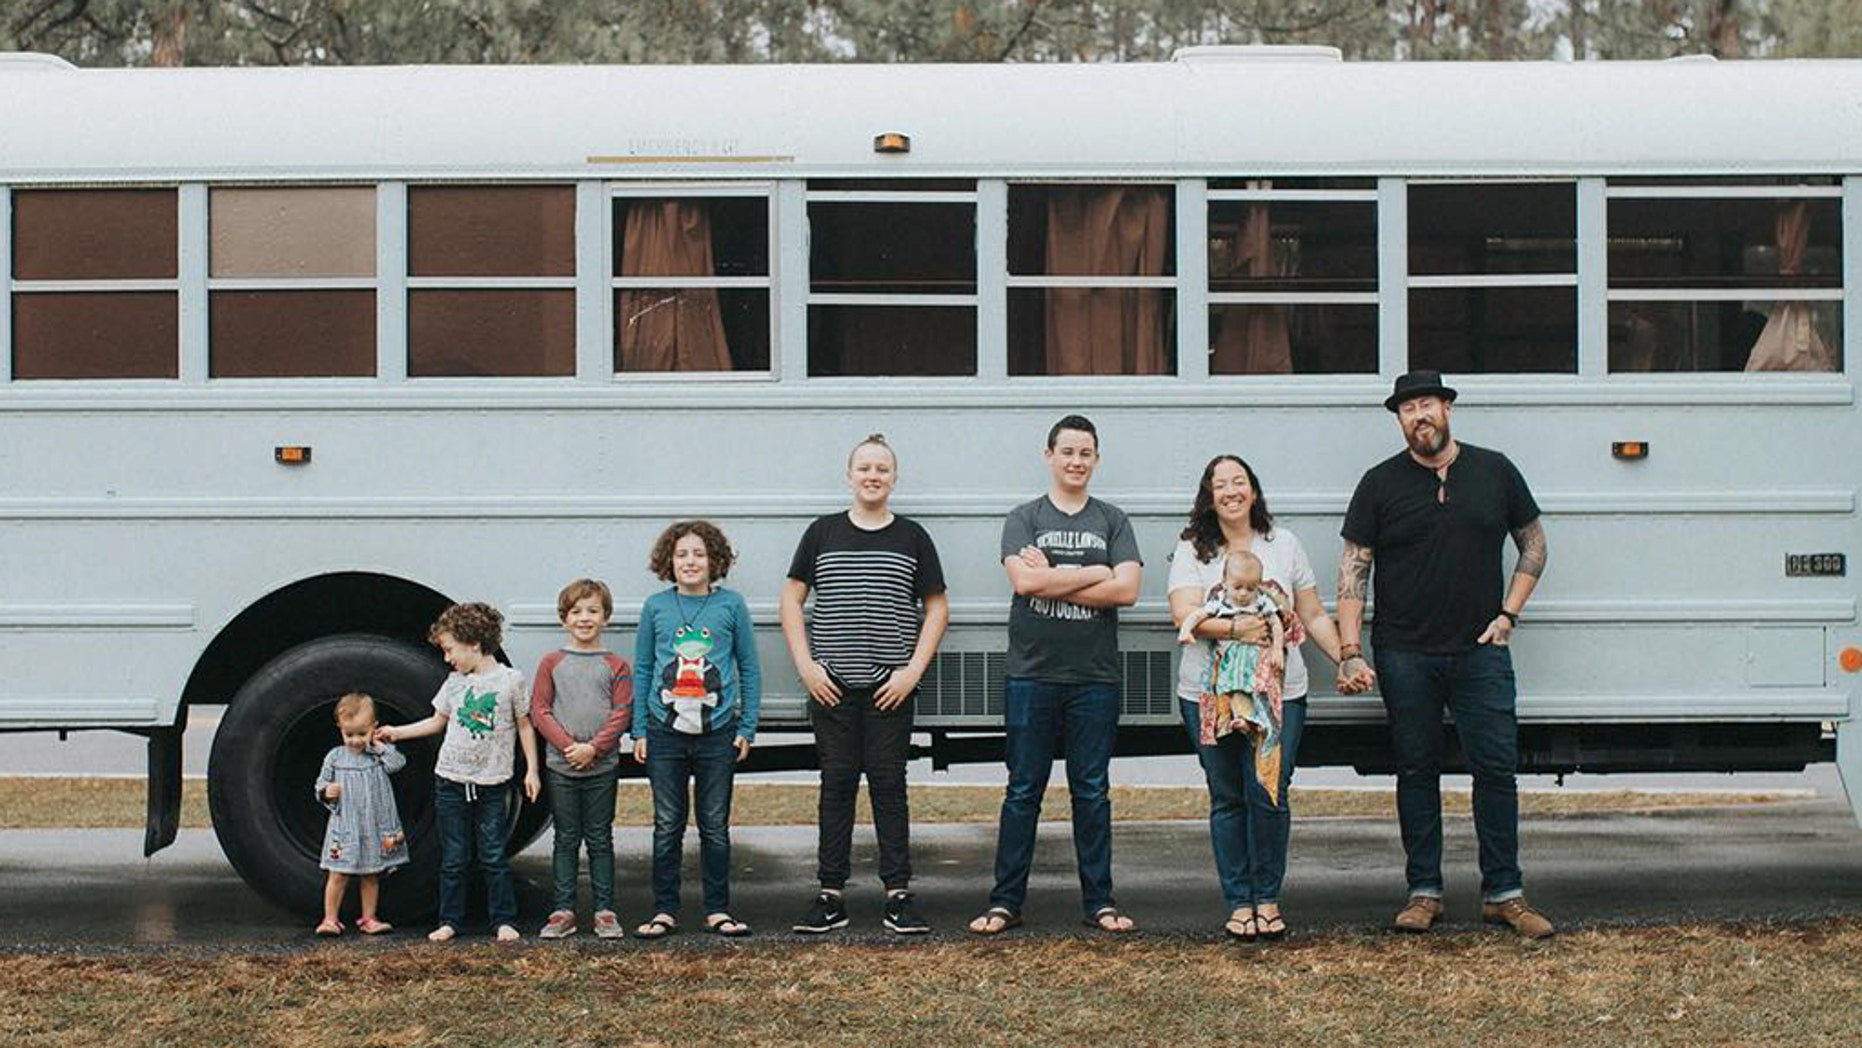 A family of nine from Florida converted a school bus into an RV and travel the country.